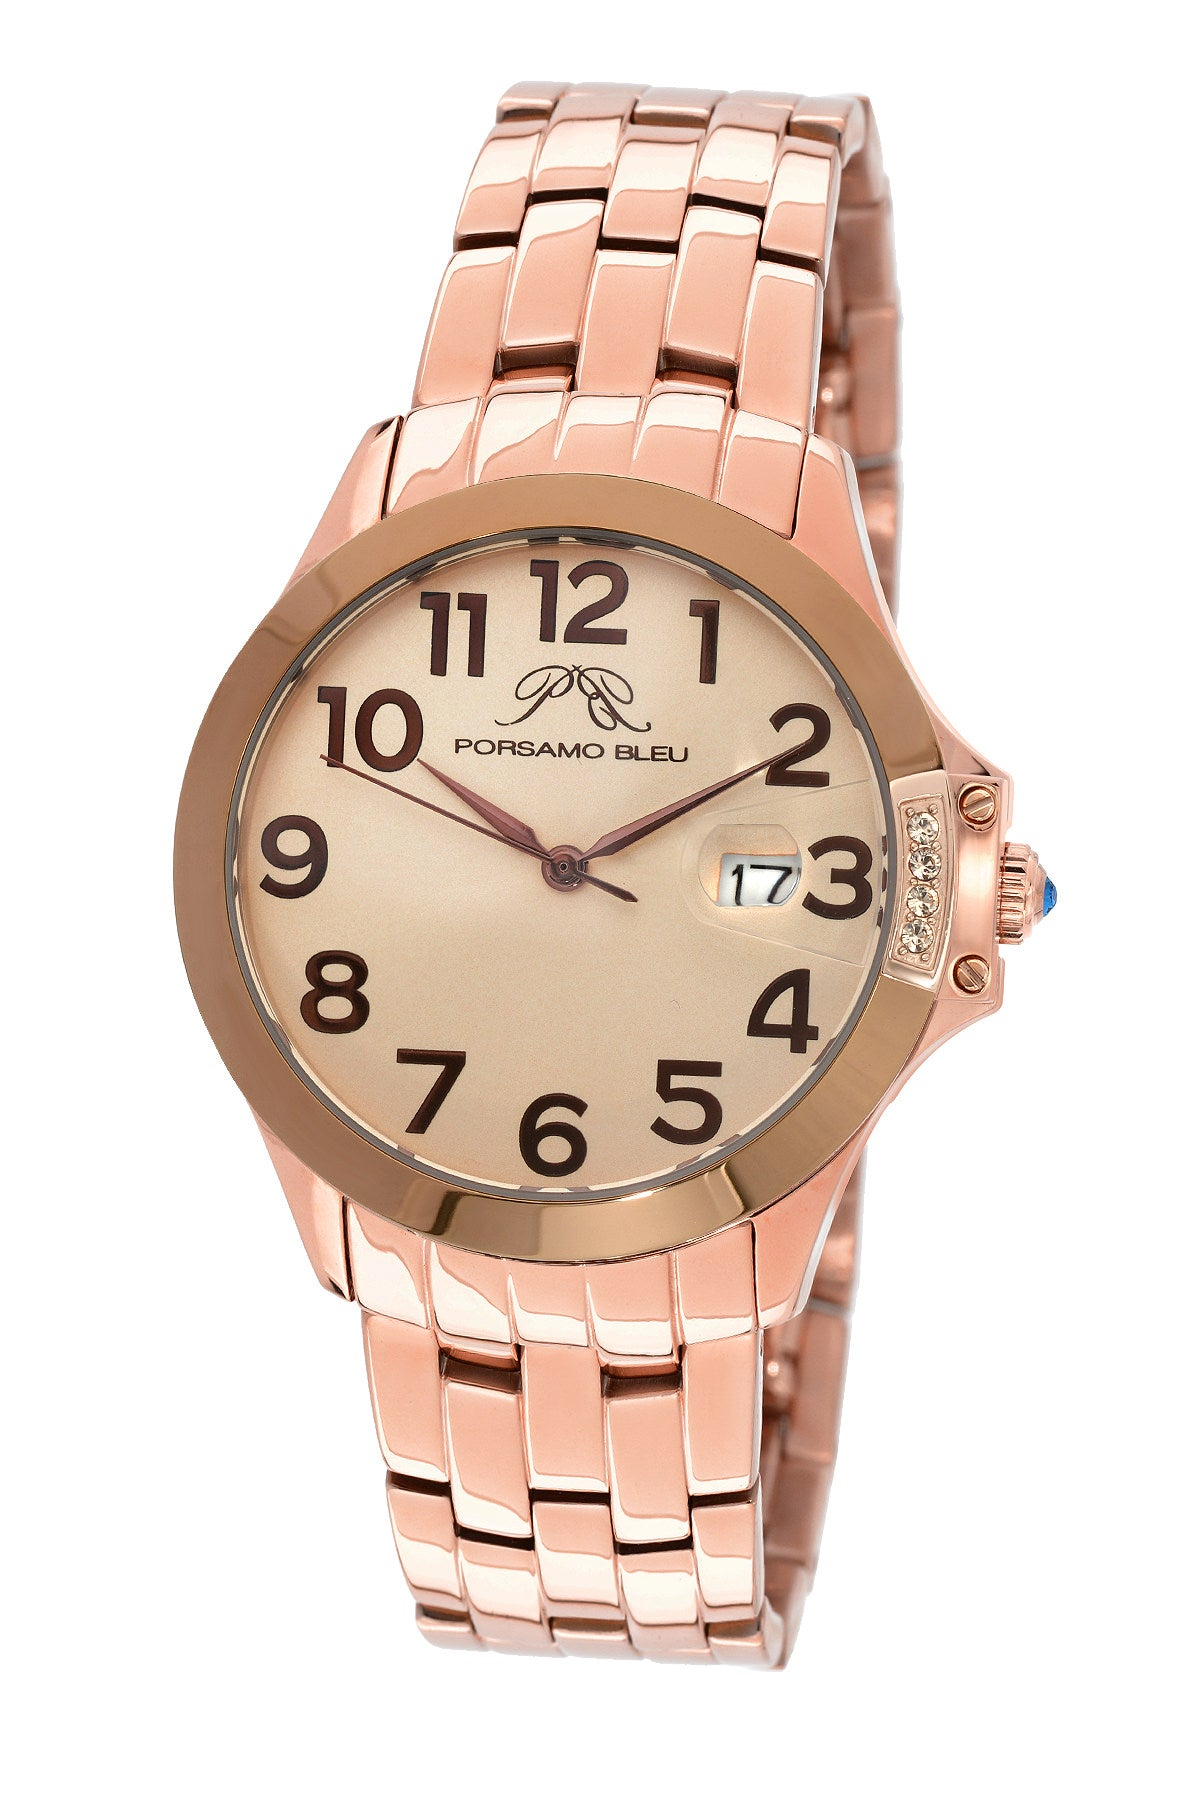 Porsamo Bleu Olivia luxury women's stainless steel watch, rose, brown 984AOLS